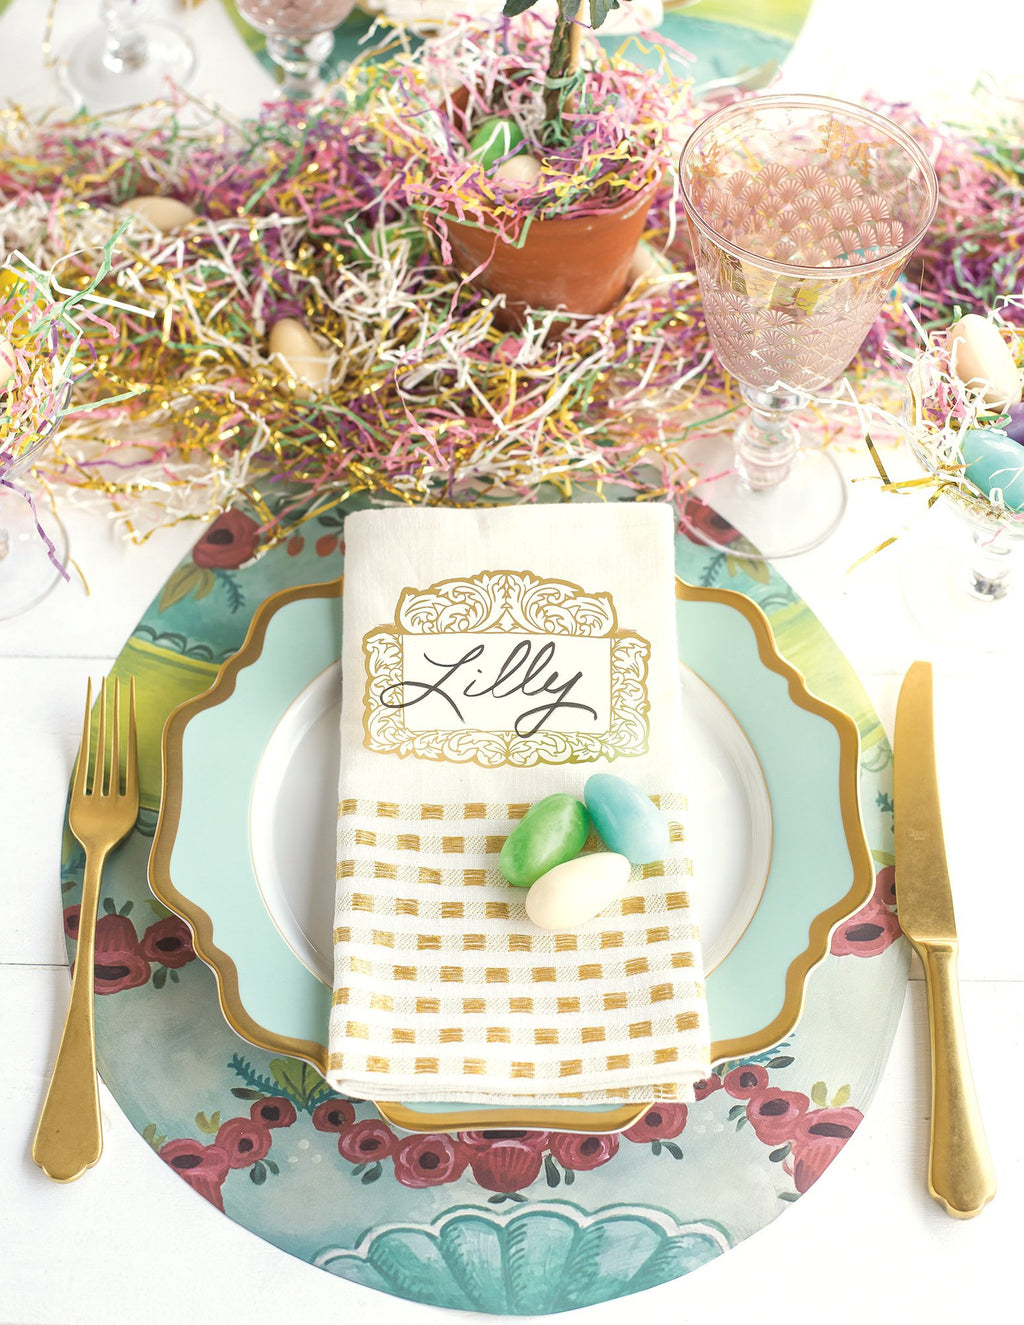 Die Cut Easter Egg Placemat